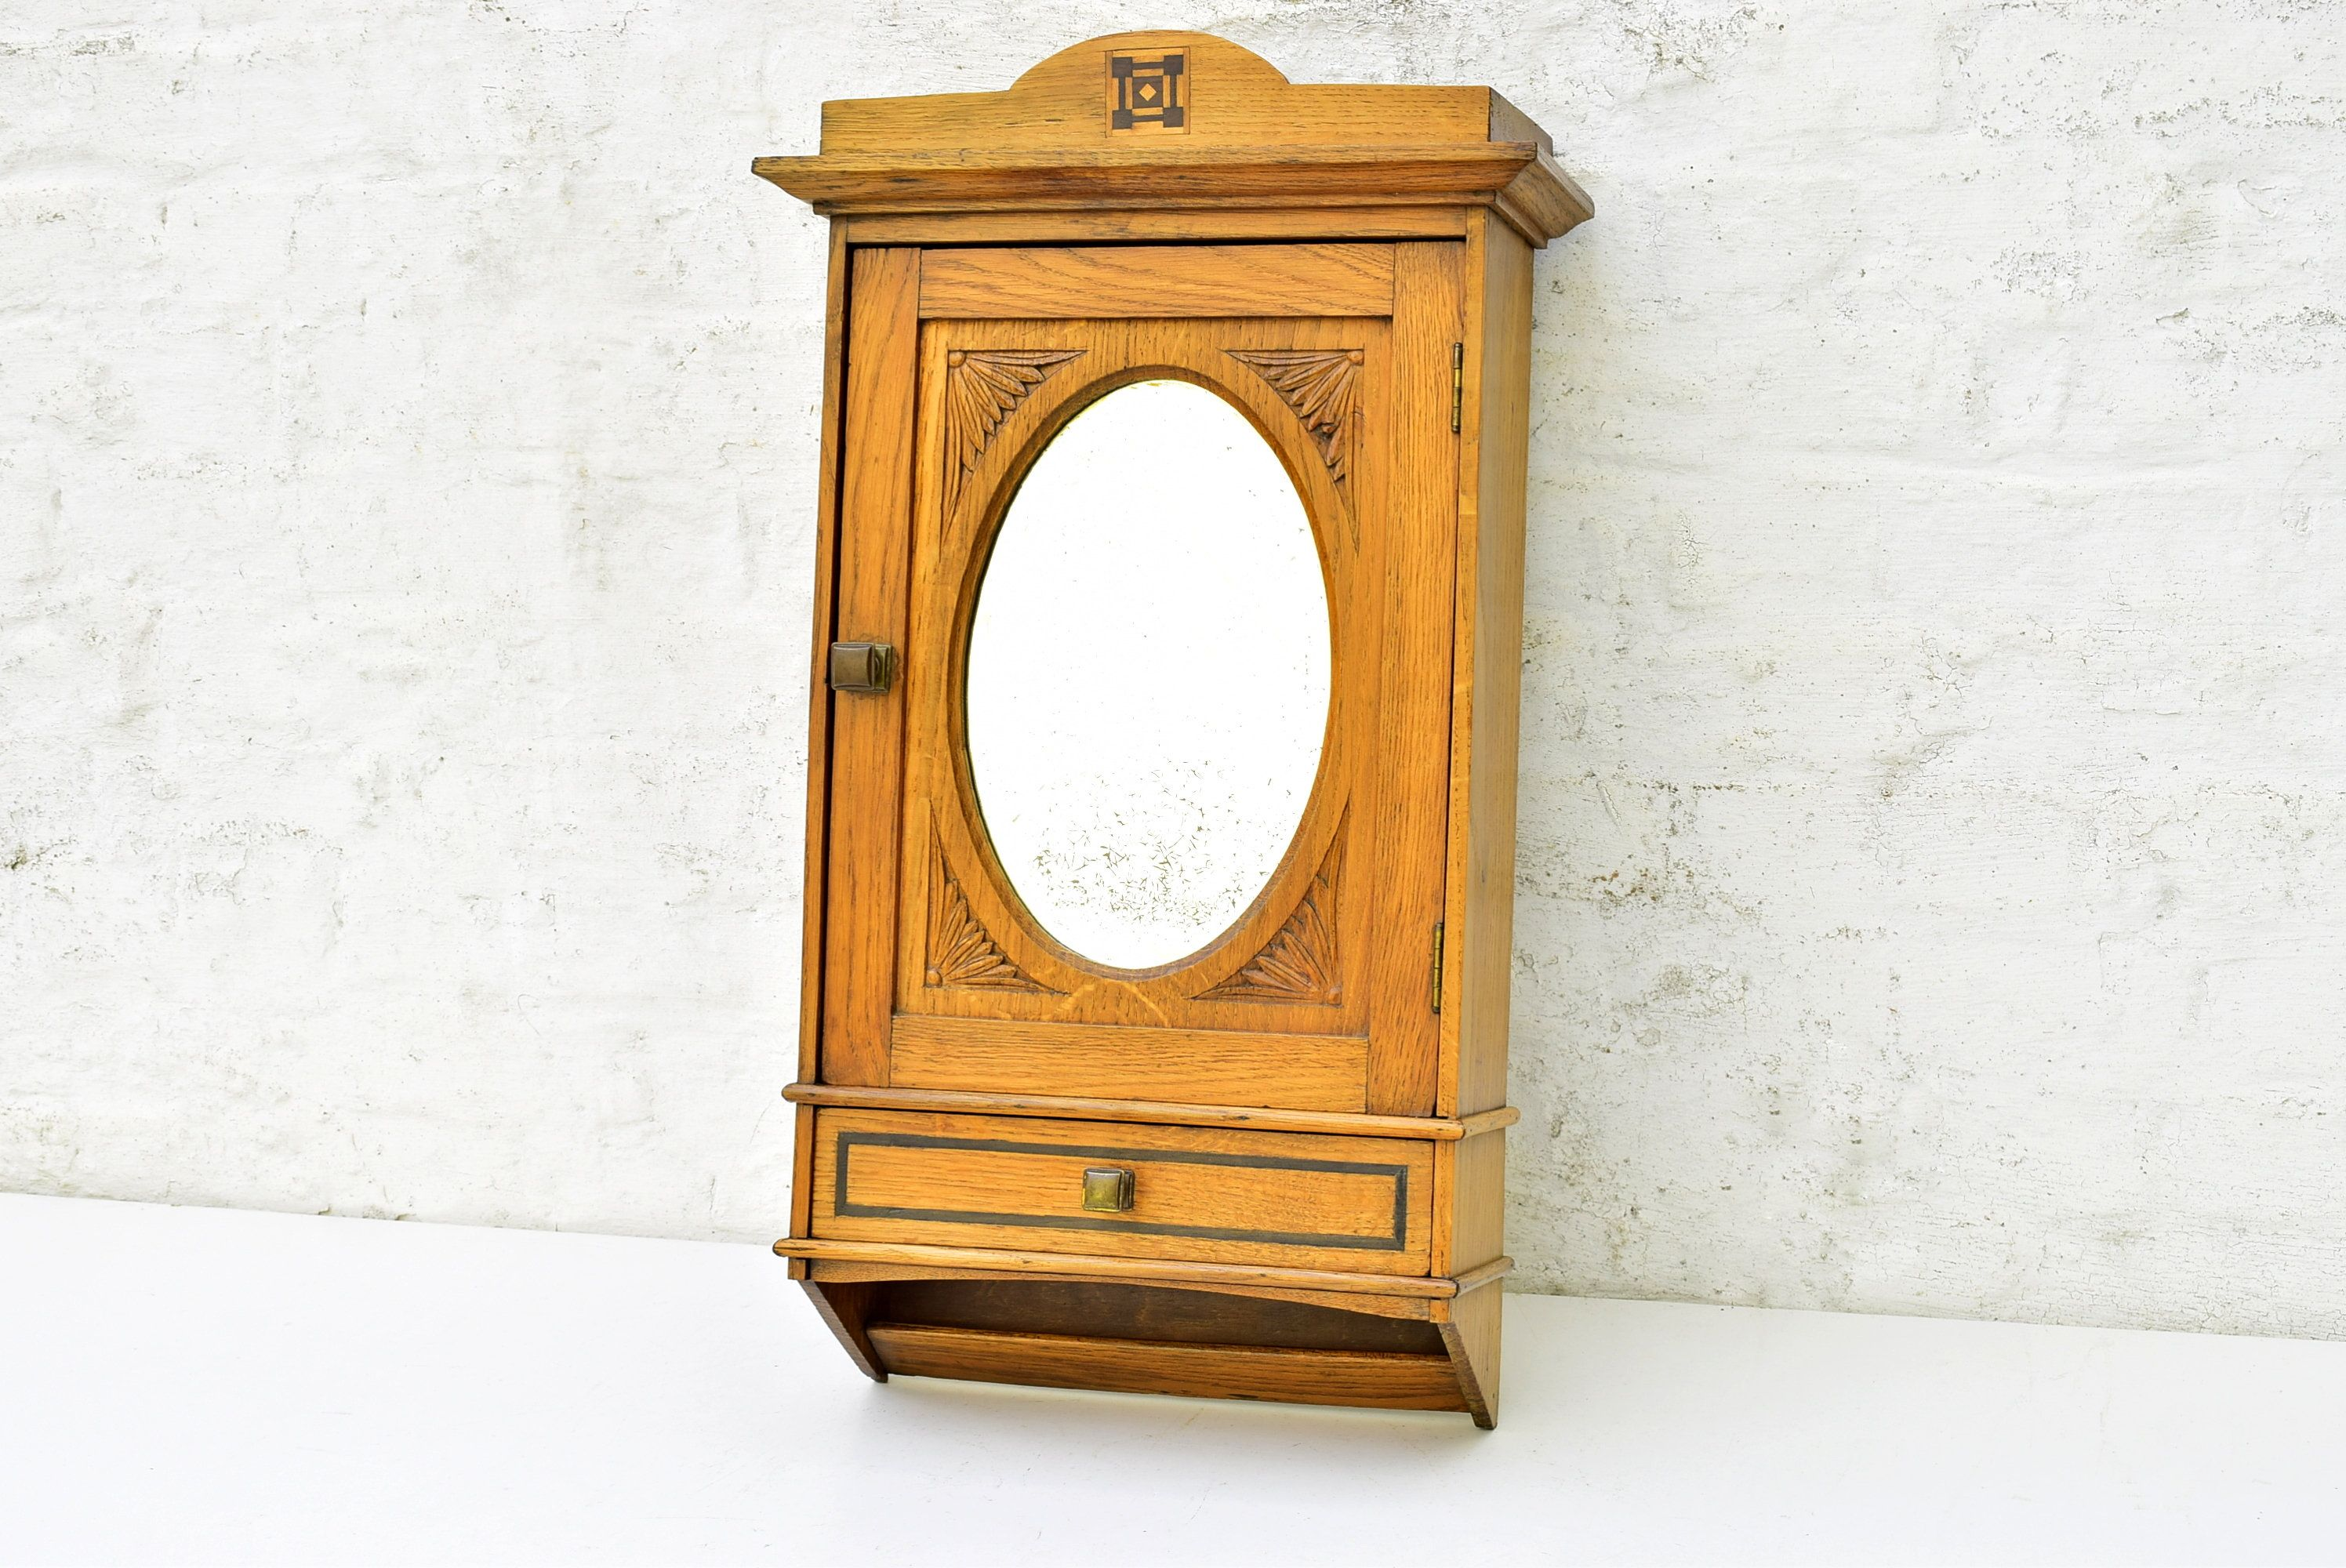 Vintage Bathroom Wall Cabinet Made In Poland Retro Wooden First